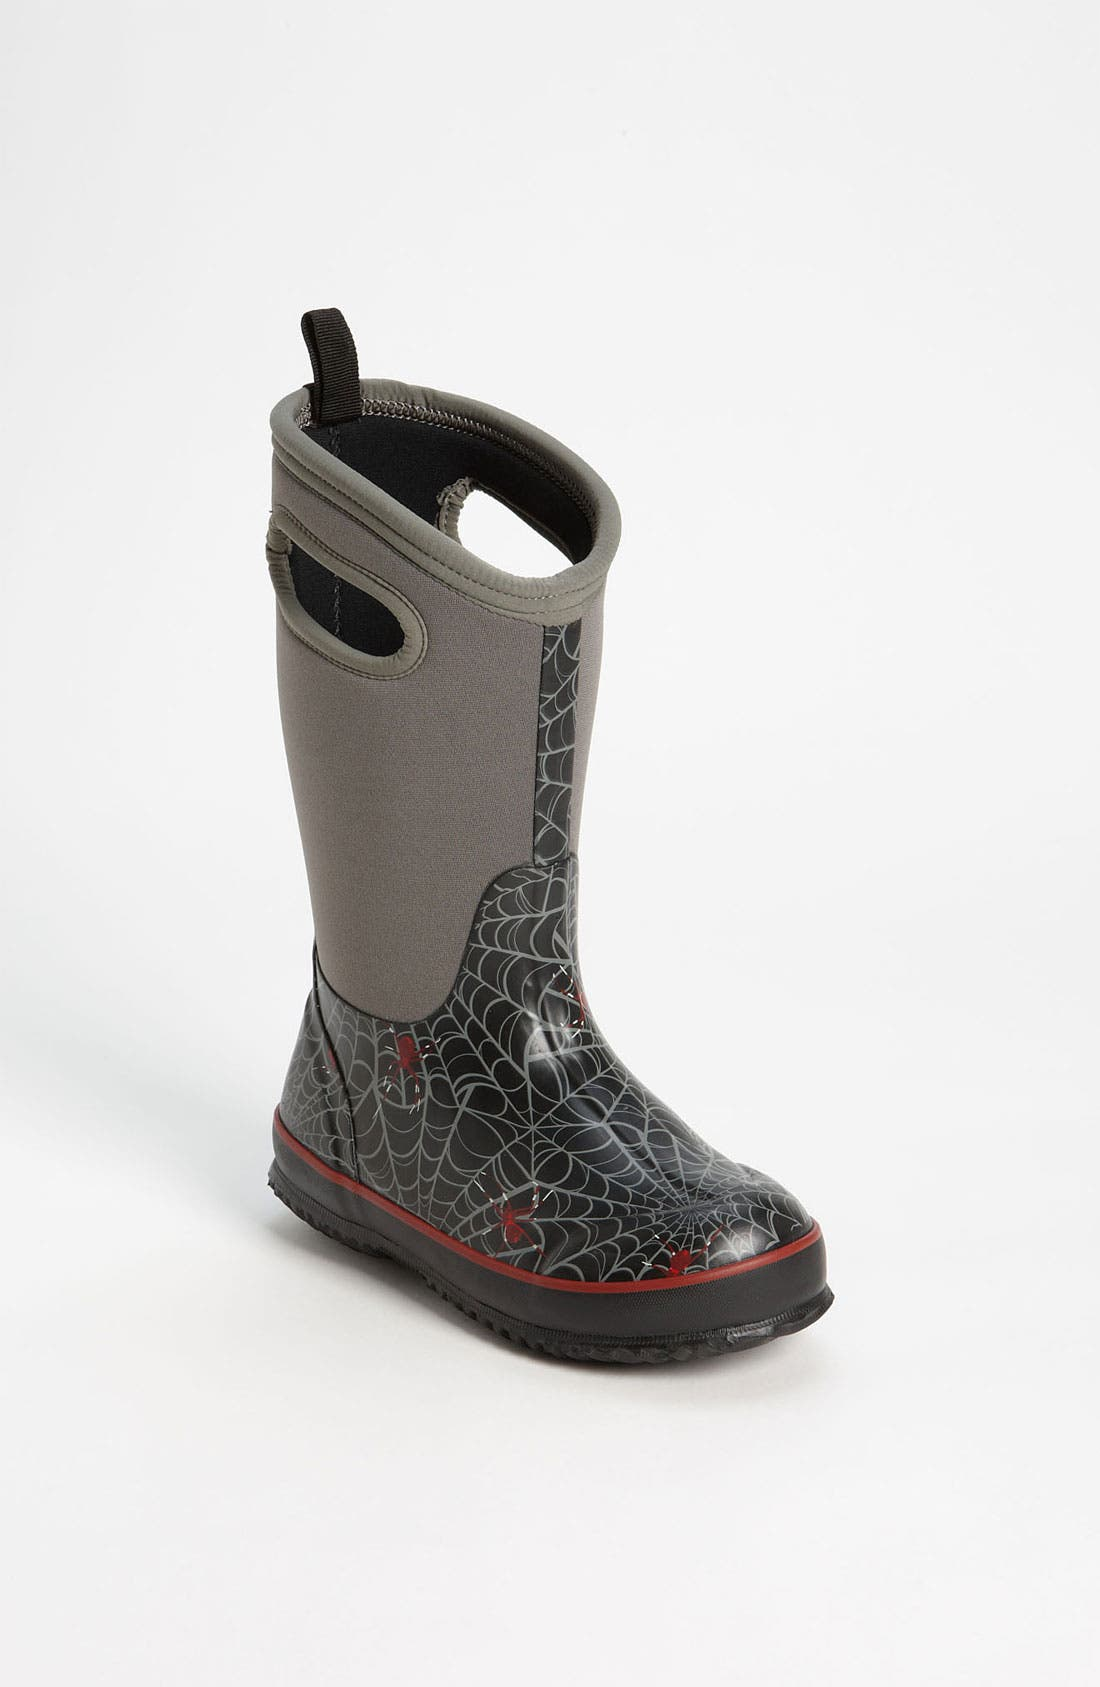 Main Image - Bogs 'Classic High - Spiders' Waterproof Boot (Toddler, Little Kid, & Big Kid)